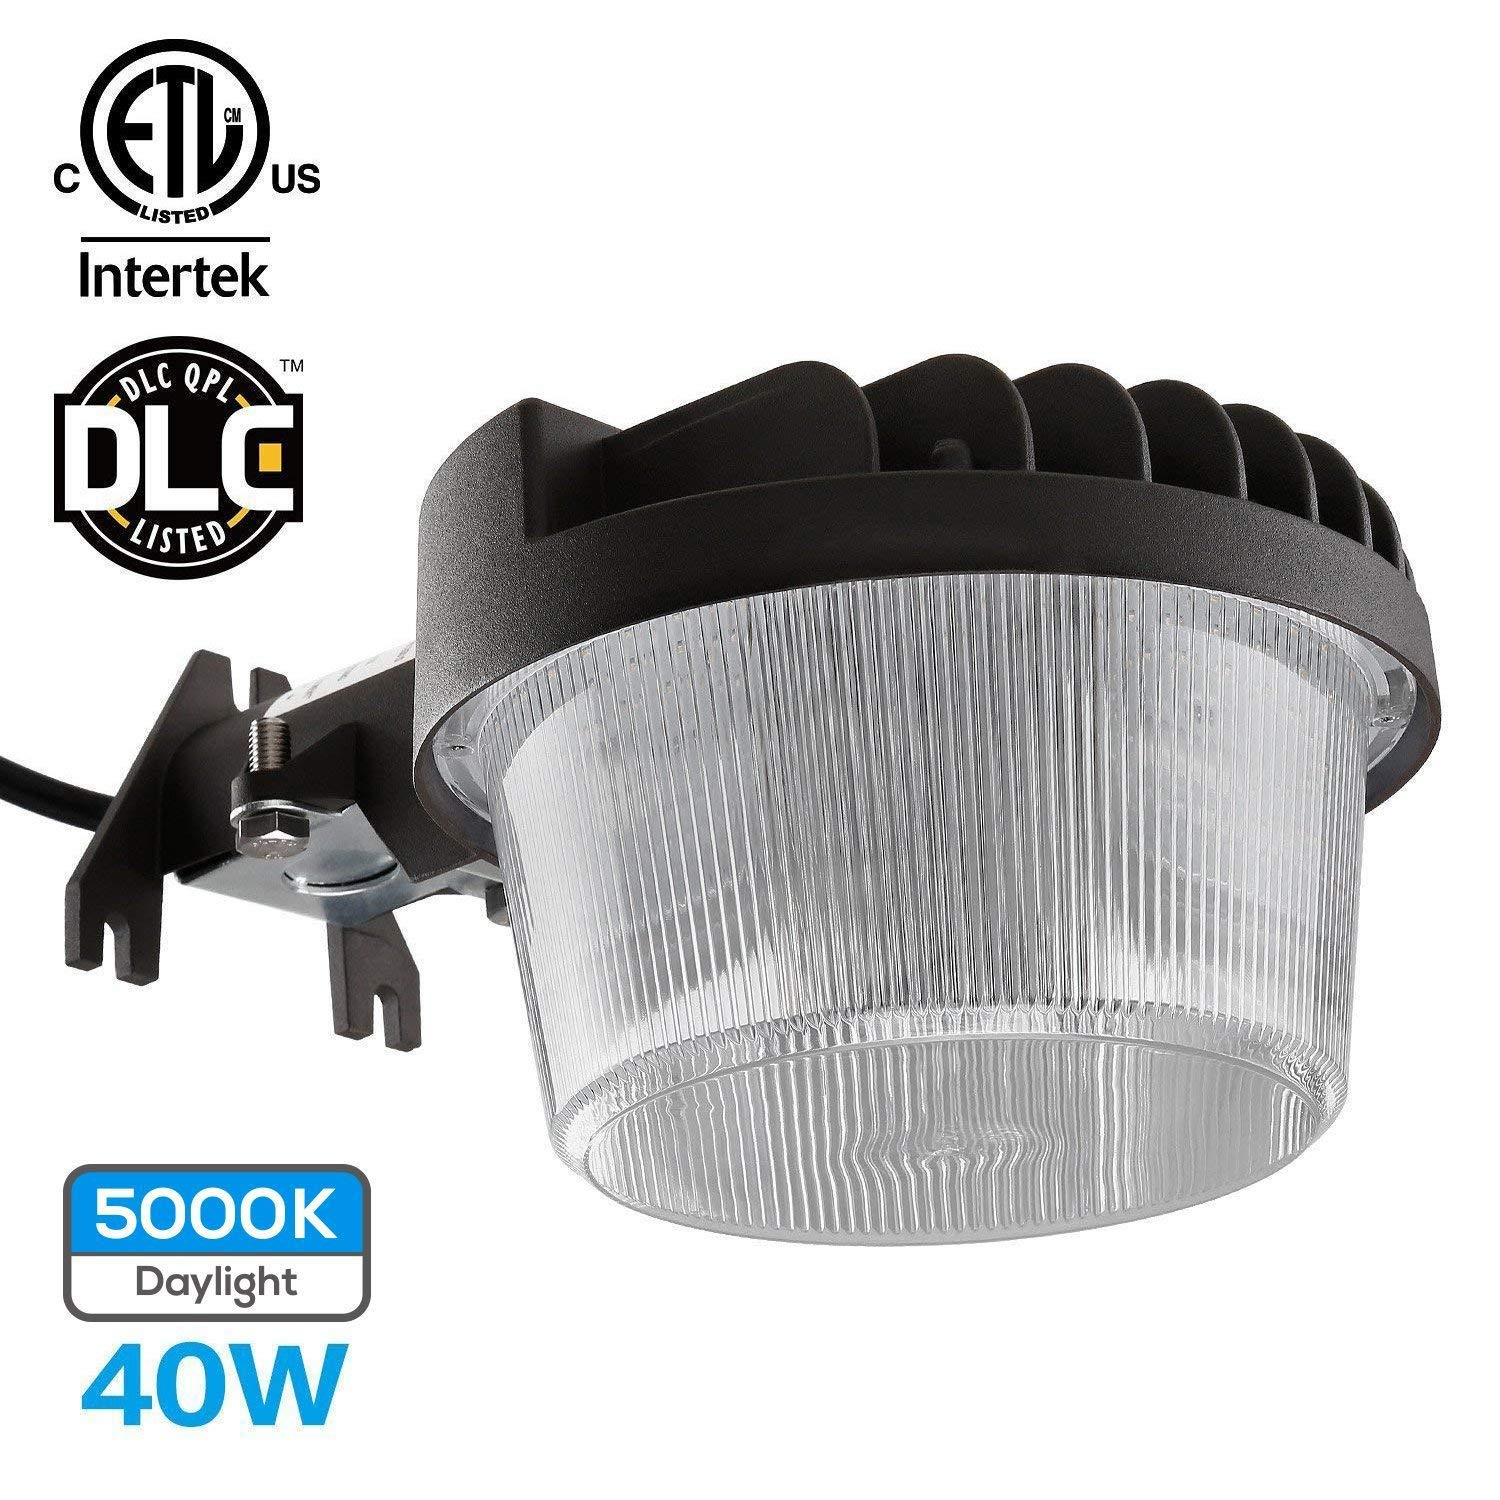 TORCHSTAR Dusk-to-Dawn LED Outdoor Barn Light (Photocell Included), 40W (300W Equiv.), 4800lm Ultra-Bright Area Light, 5000K Daylight, DLC & ETL-Listed Yard Floodlight, 5-Year Warranty